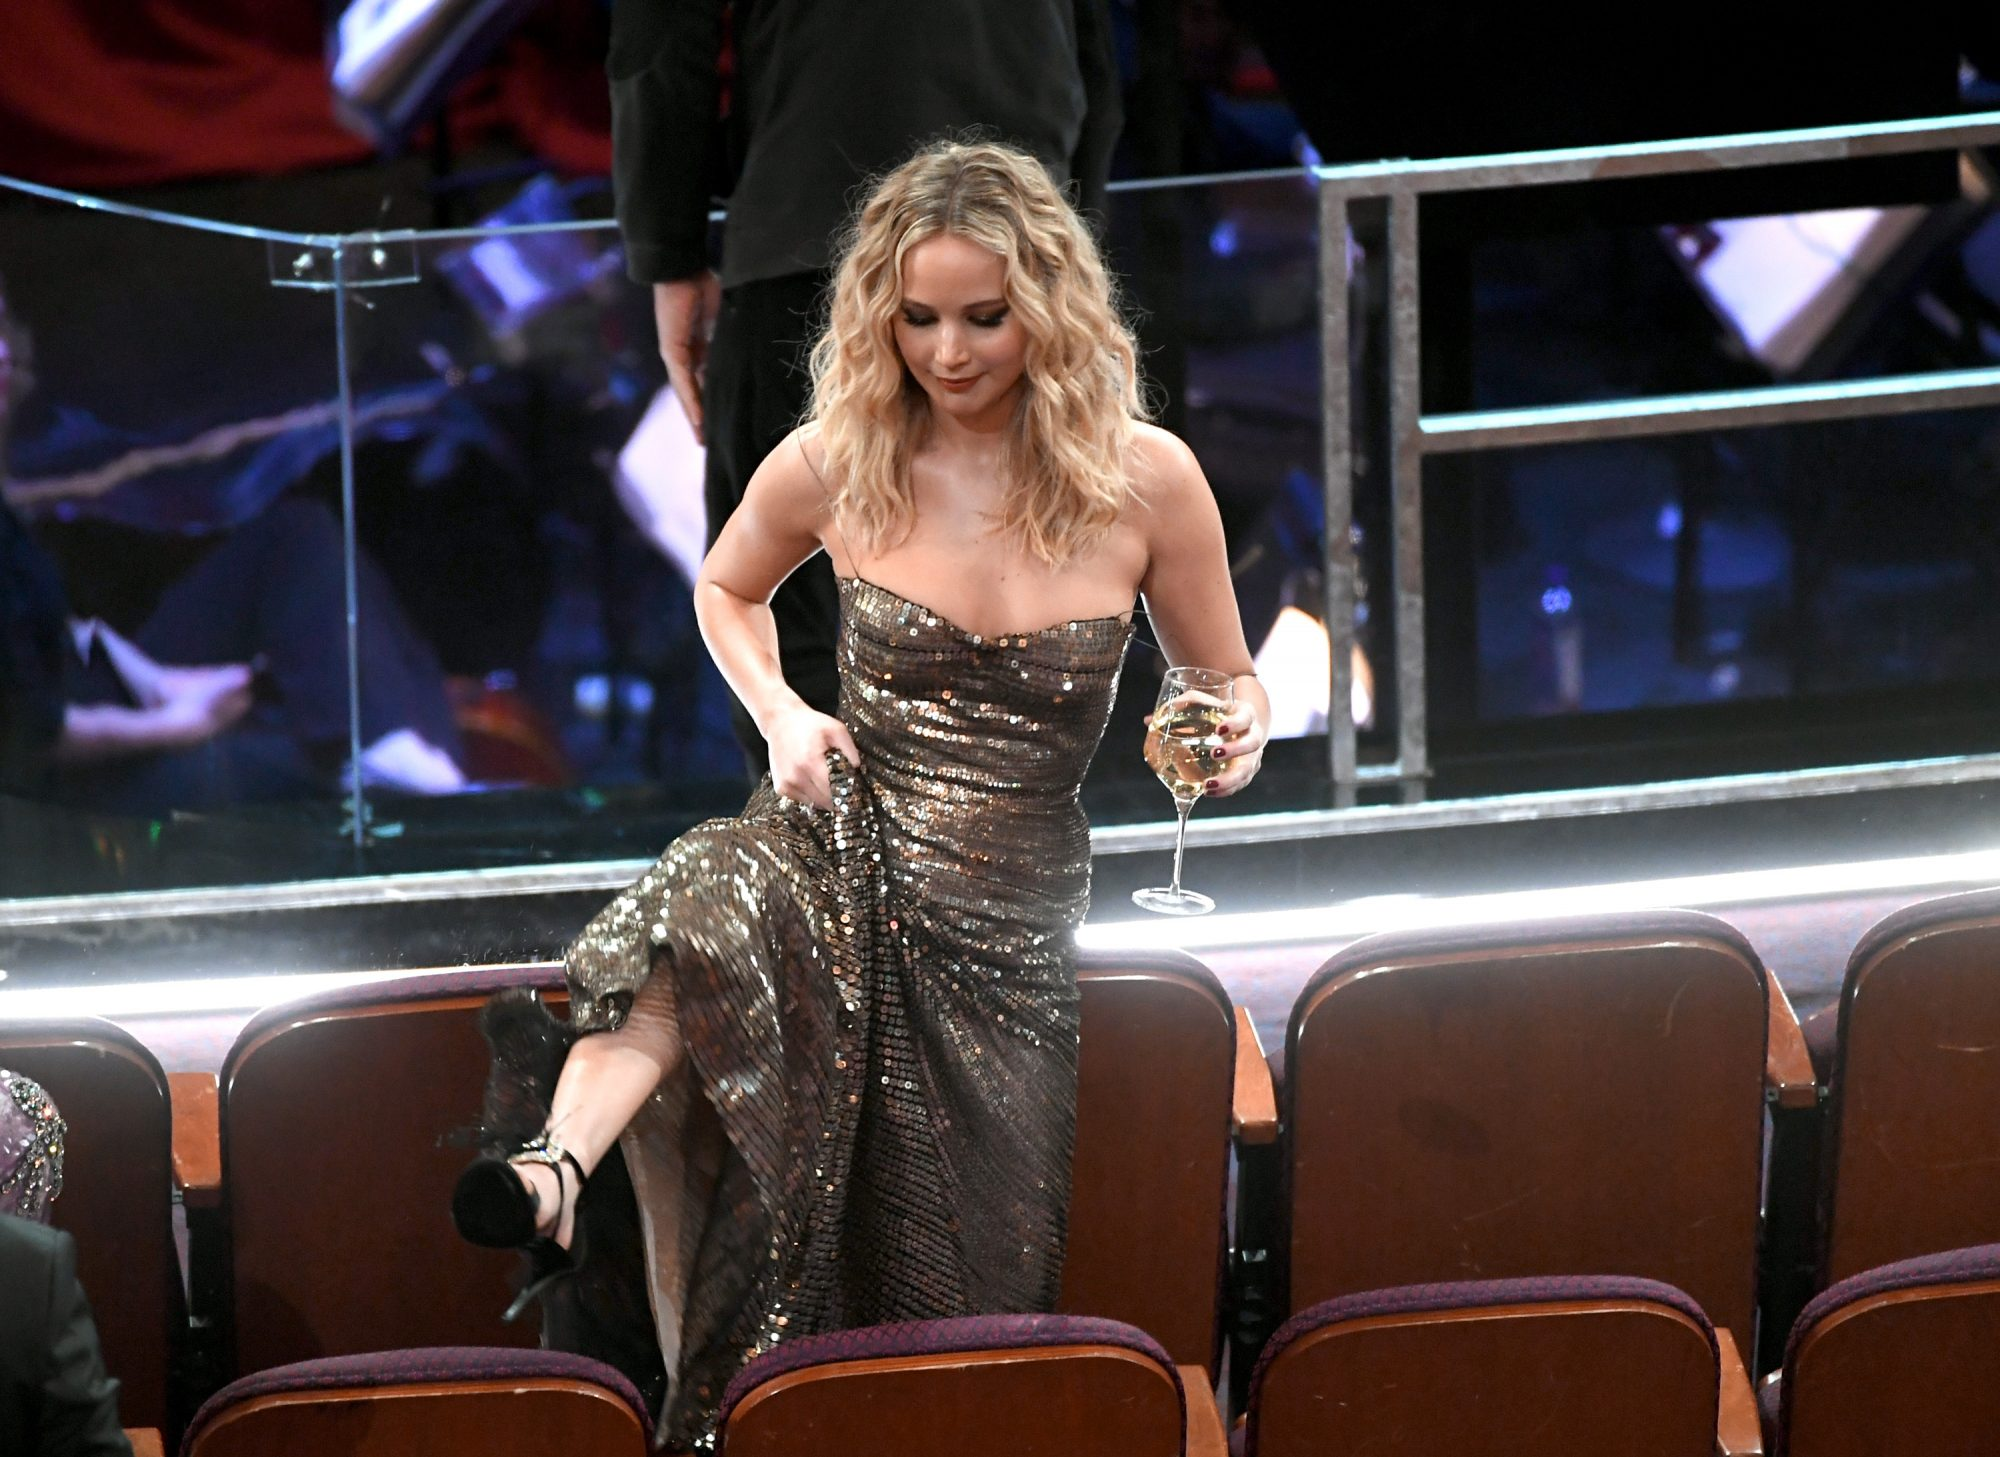 Jennifer Lawrence Is Peak Jennifer Lawrence Climbing Over Chairs at the Oscars, Wine Glass in Hand